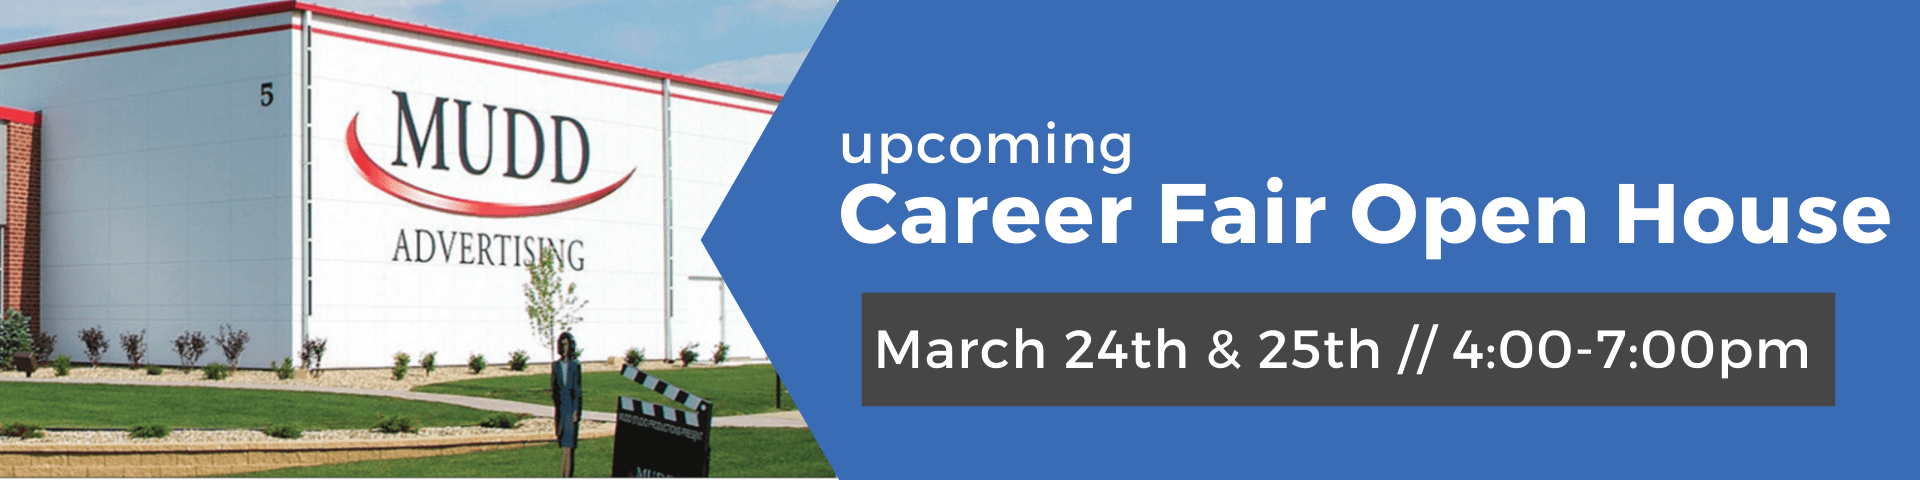 Open House Career Fair